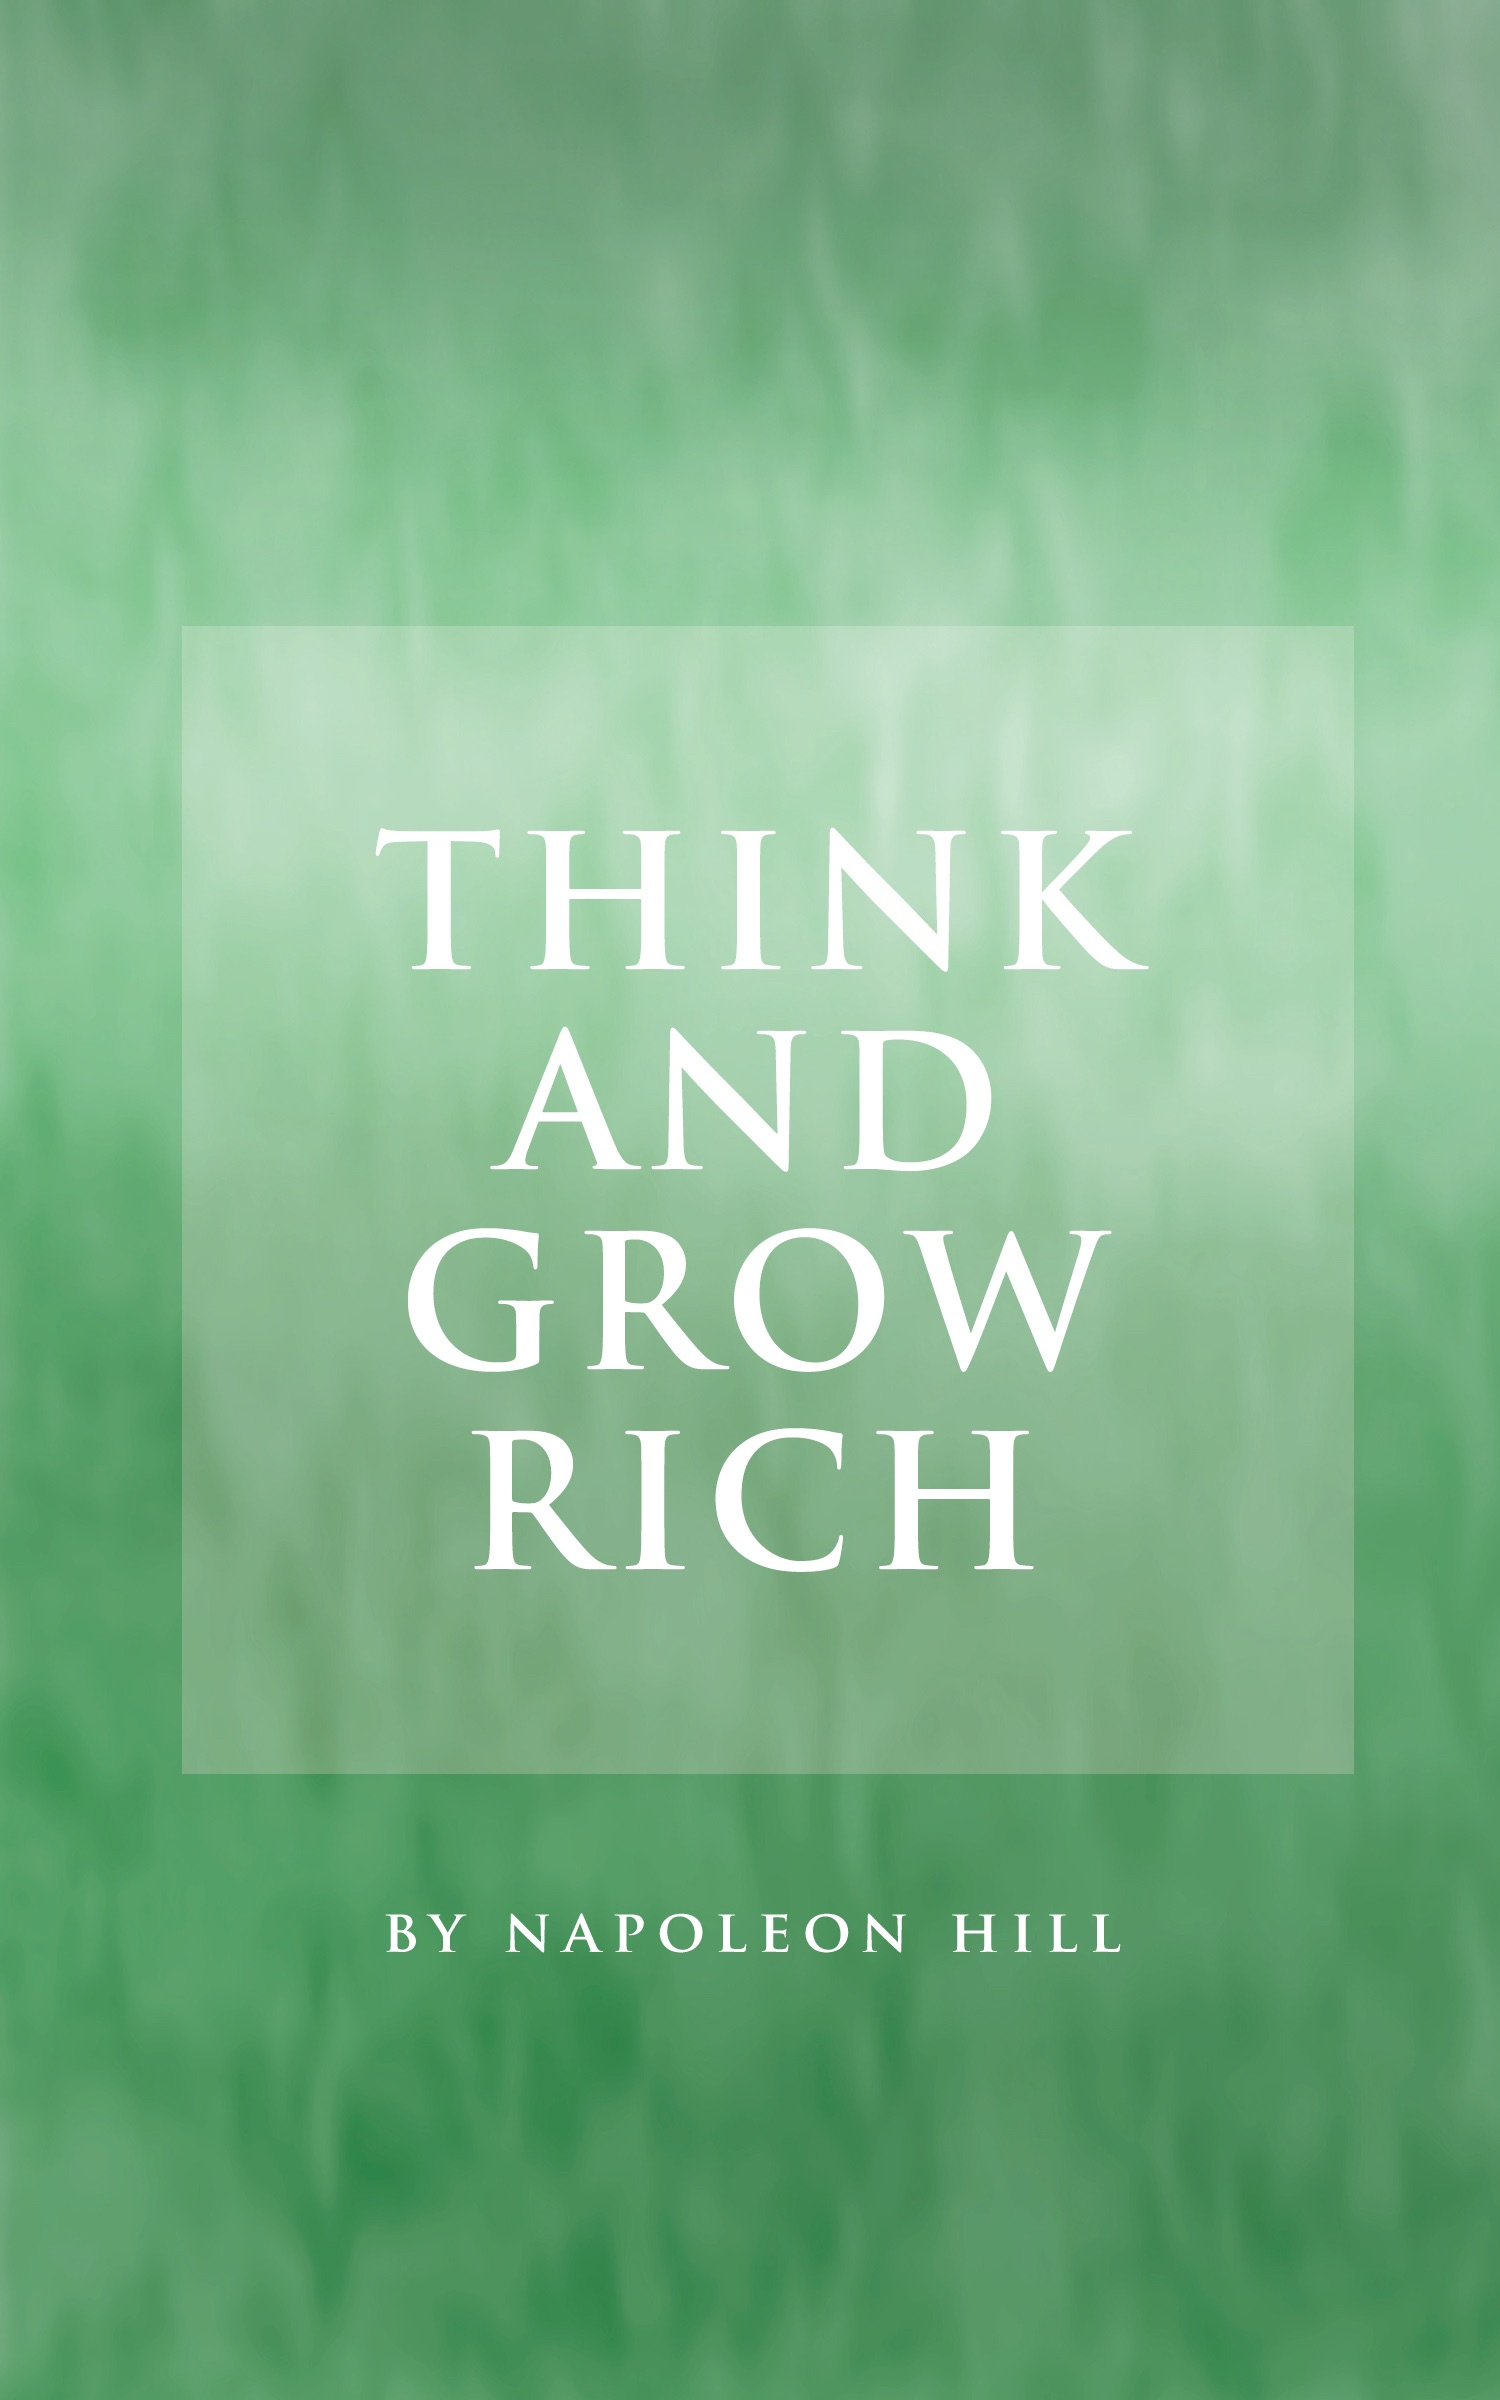 Rich Napoleon Hill Beard King Guys Follow For Daily: Think And Grow Rich By Napoleon Hill On IBooks